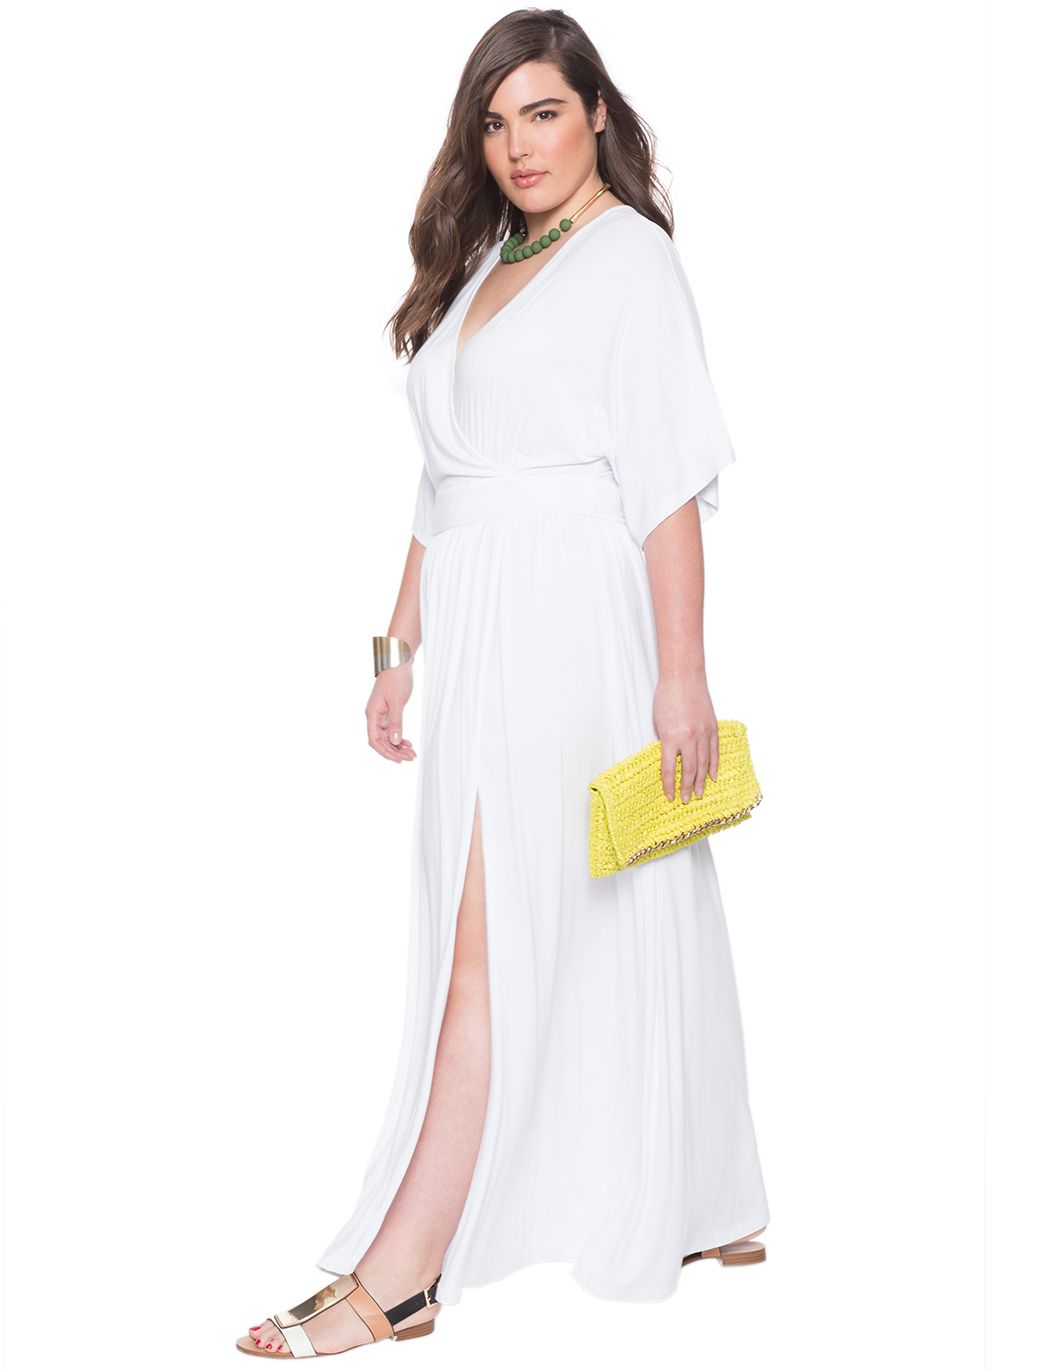 Kimono maxi dress womenus plus size dresses eloquii love that